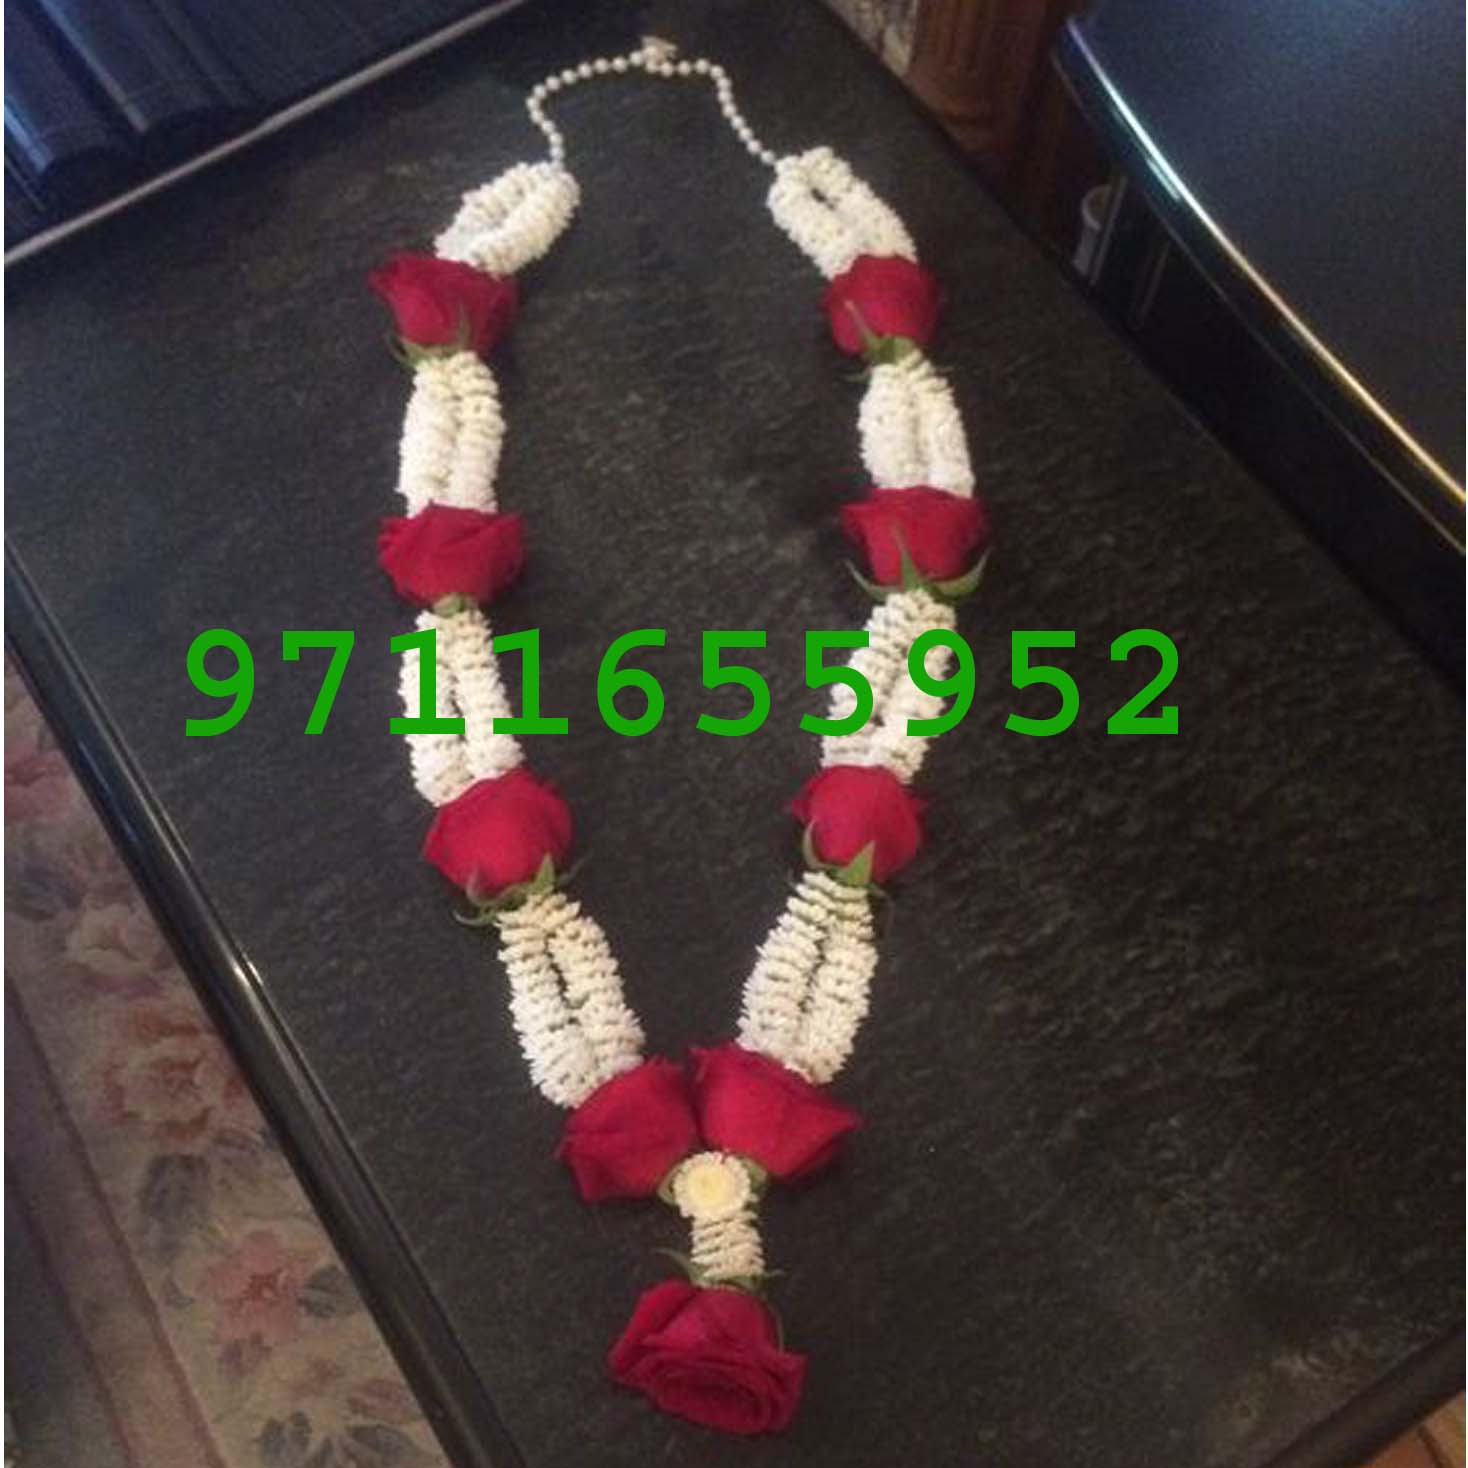 wedding garland of mogra and roses jaimala , jaismine and rose garland varmala haar for weddind or anniversary, white jaismine mogra and red roses garland for marriage anniversary